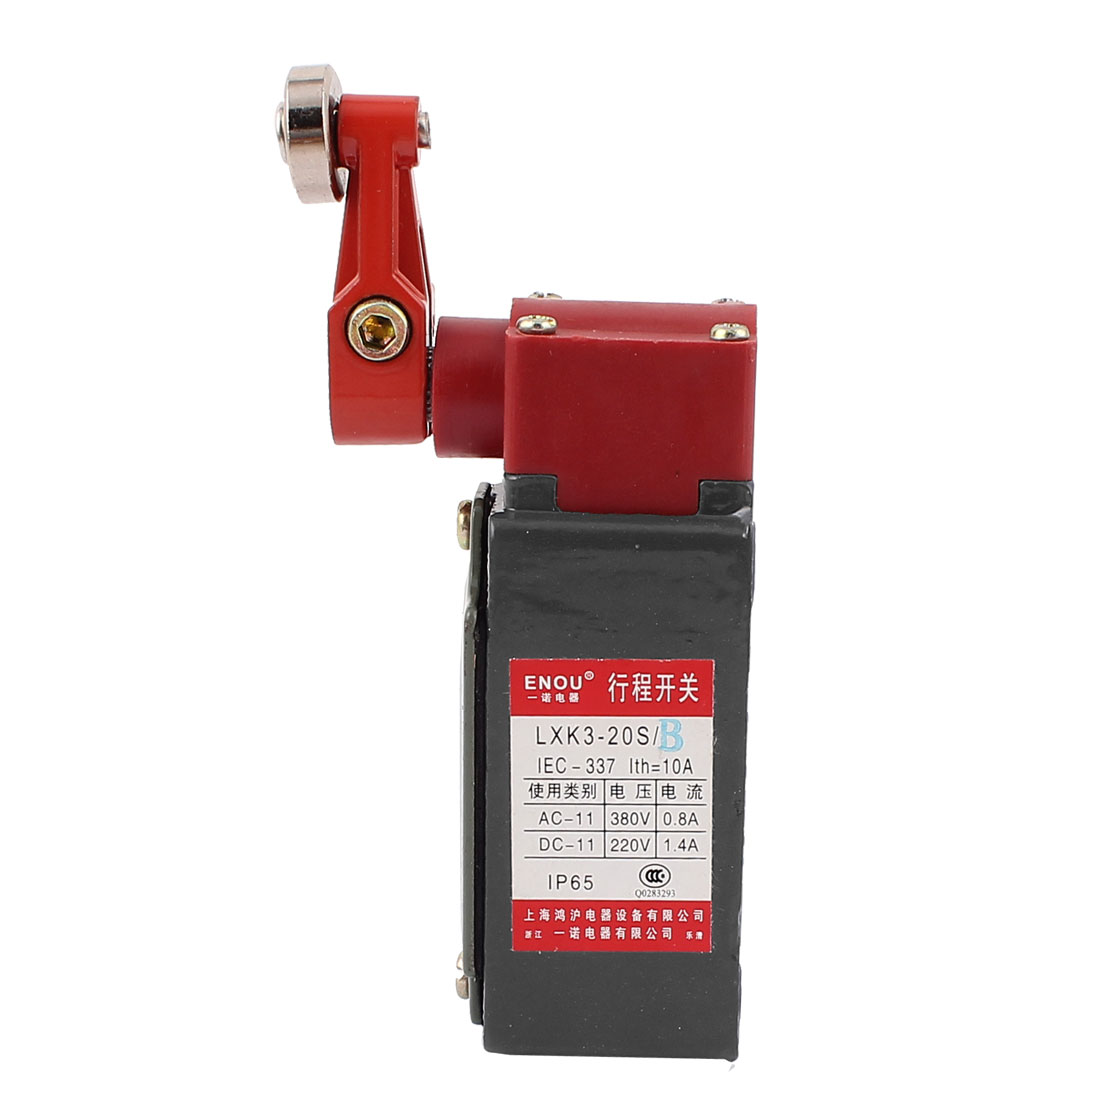 1NO 1NC SPDT Rotary Roller Lever Momentary Limit Switch AC 380V 0.8A